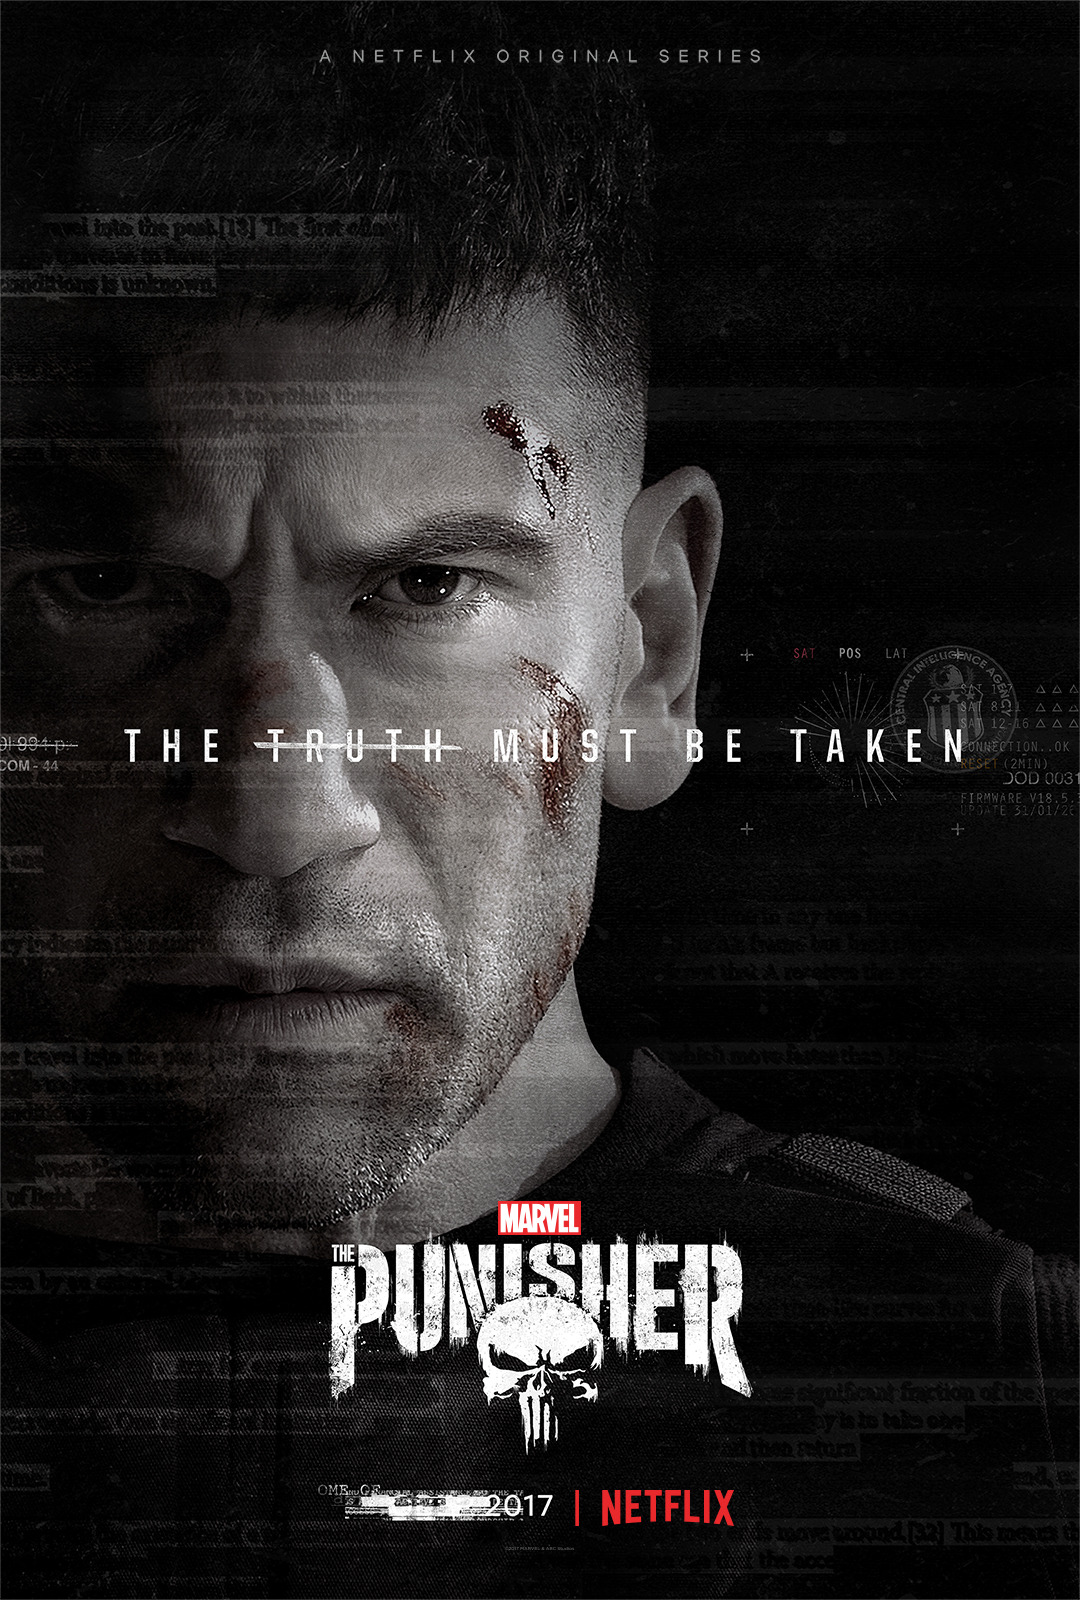 the-punisher-season-1-poster-the-truth-must-be-taken-the-punisher-netflix-40761301-1080-1600